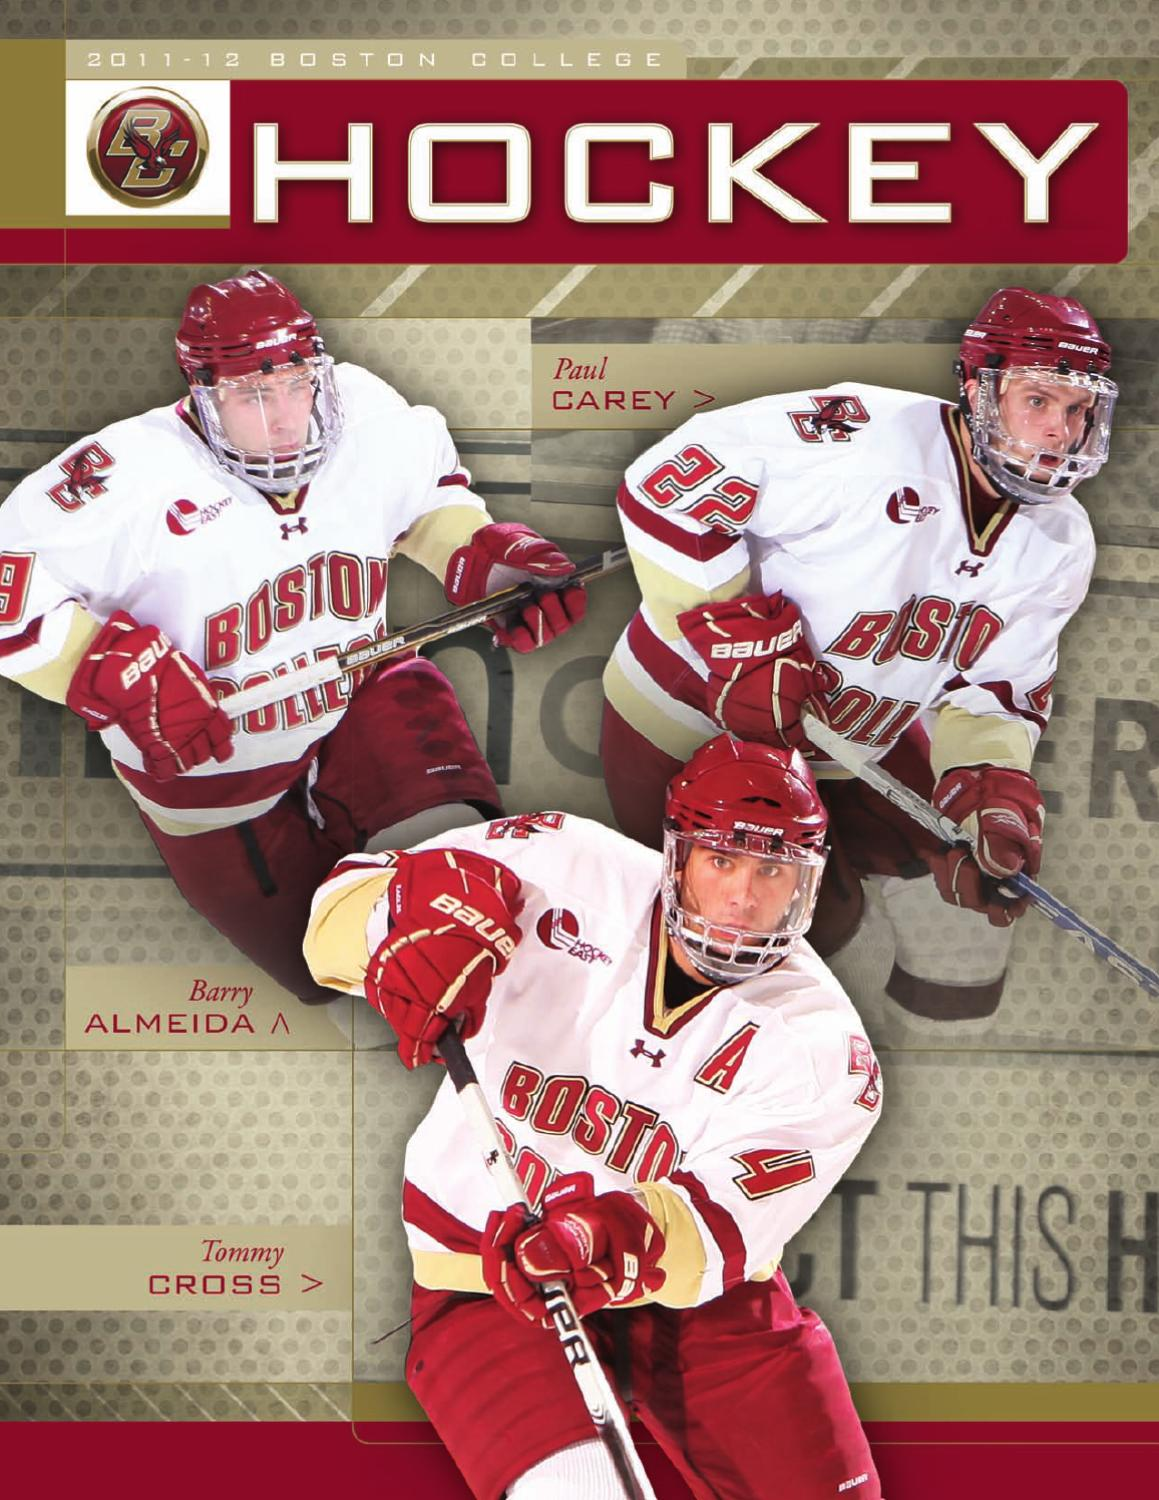 2011-12 Boston College Hockey Media Guide by Tim Clark - issuu 82349c756